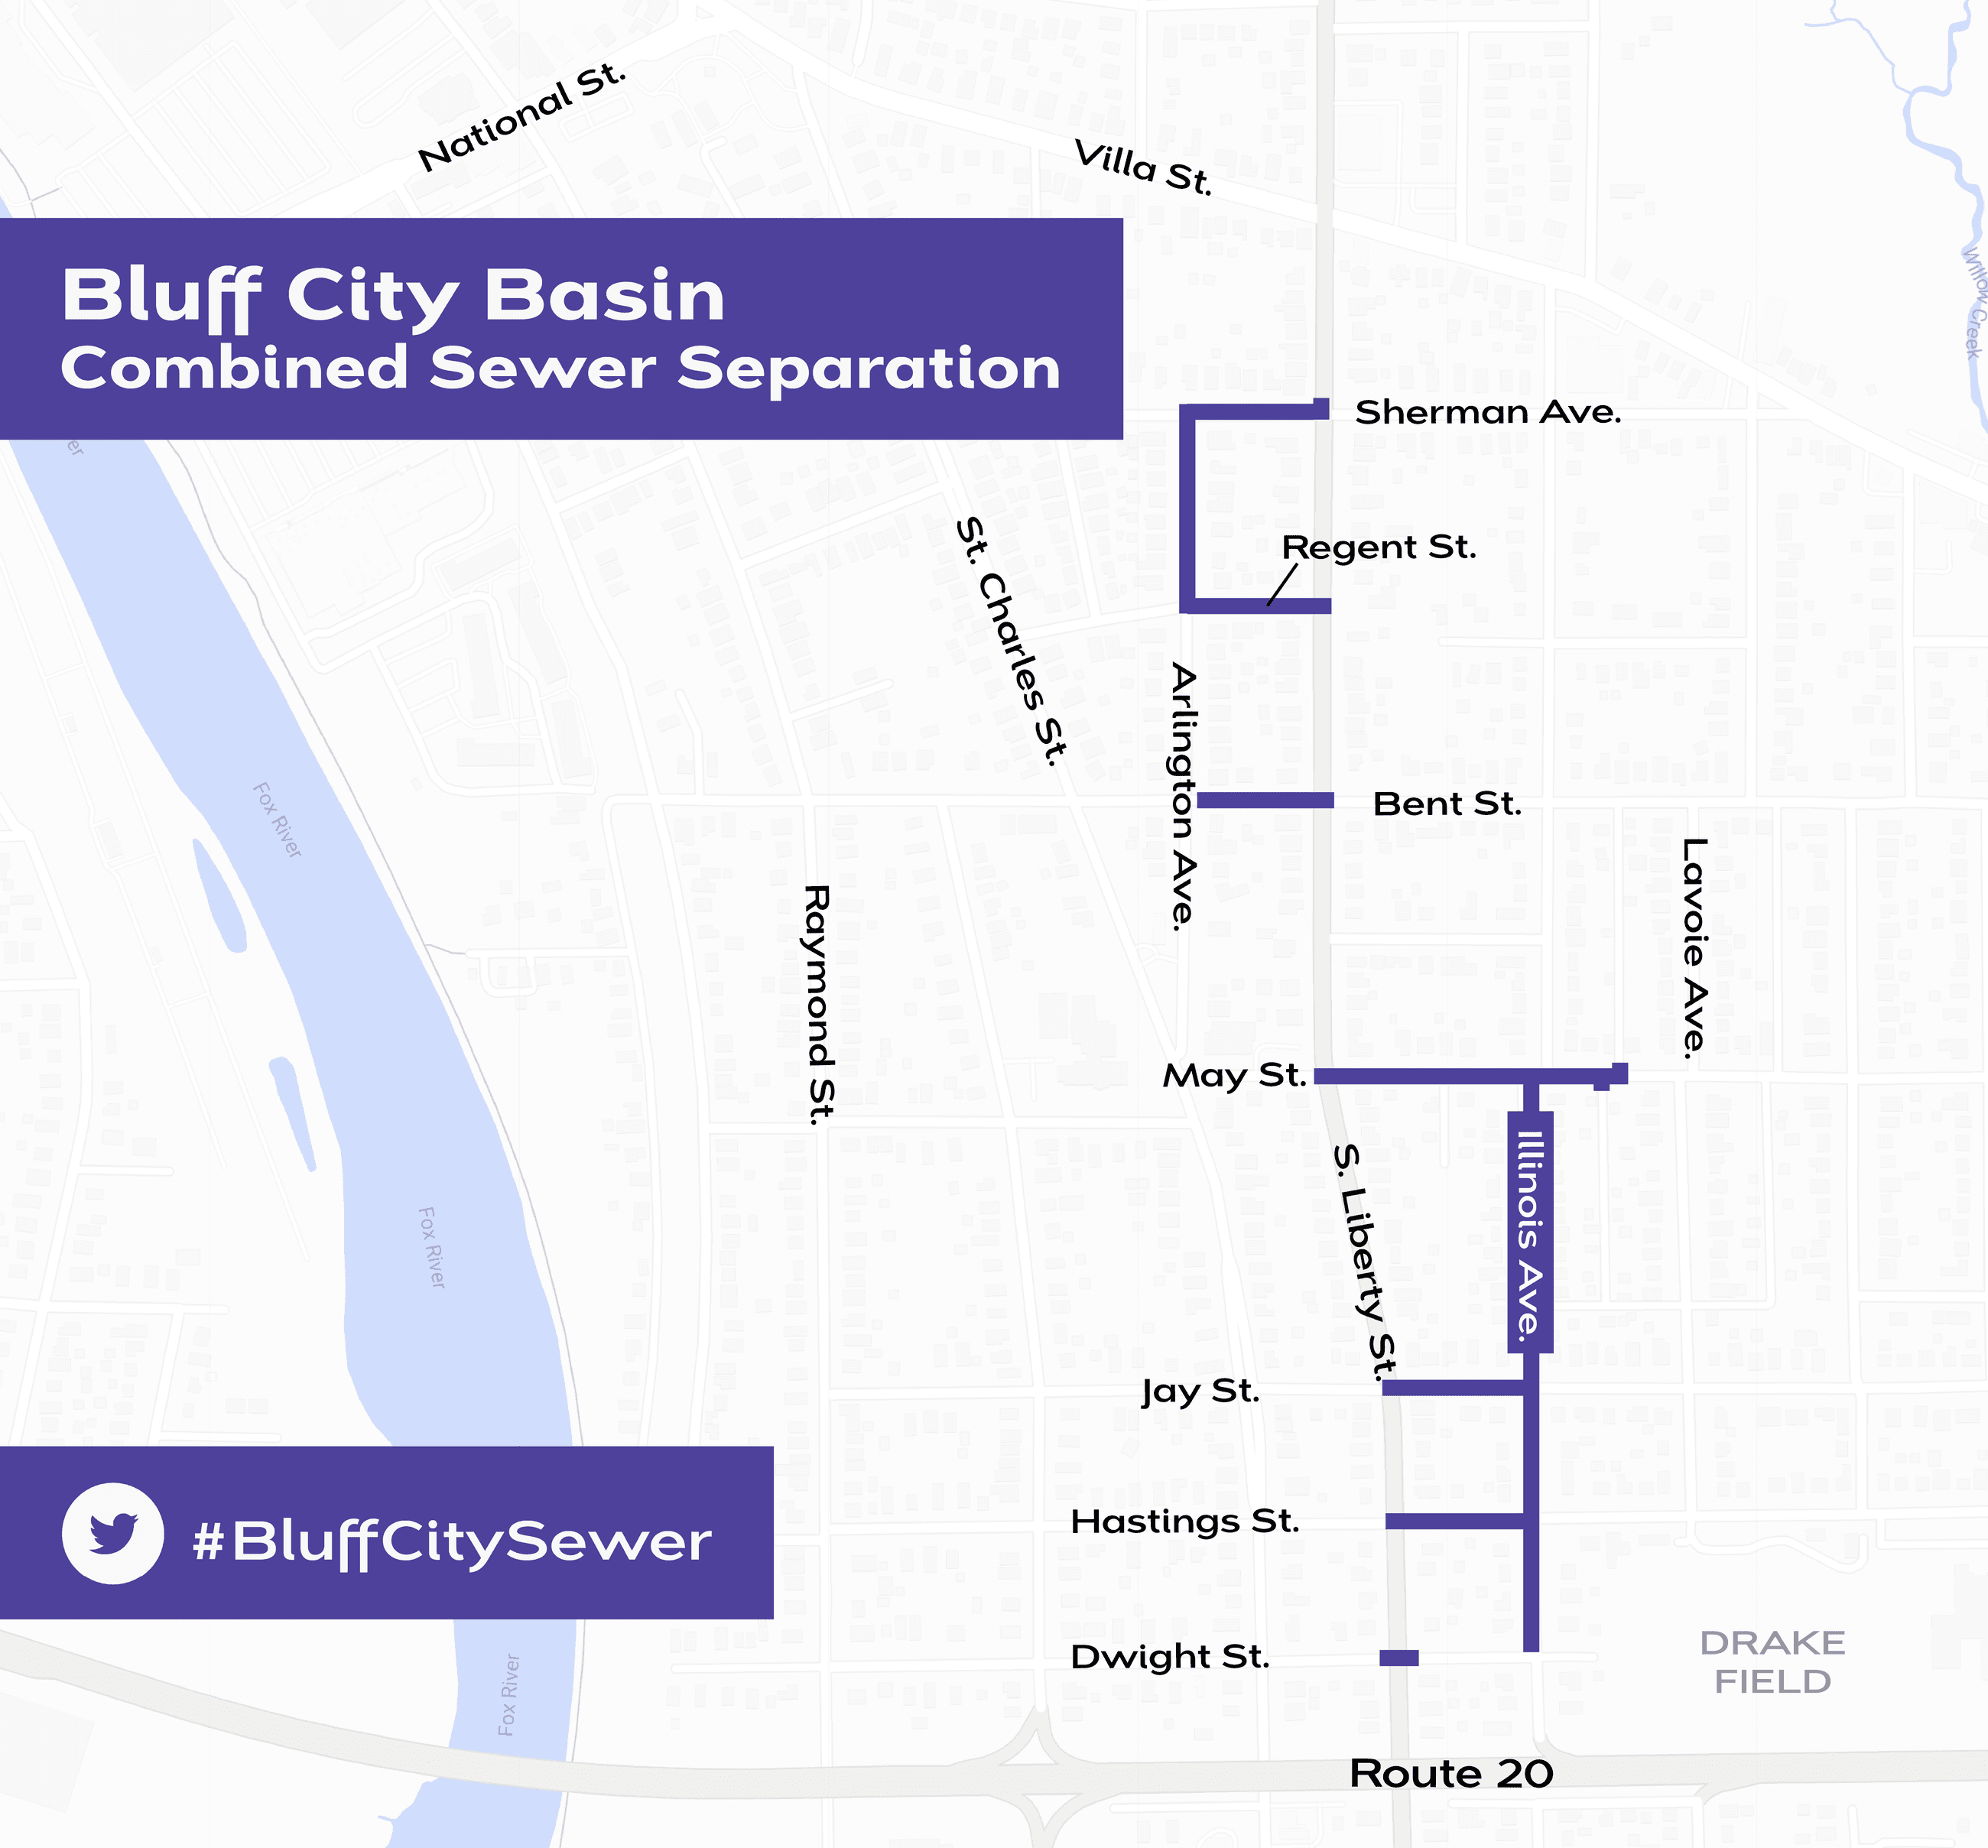 Bluff City Sewer Separation 2020 construction area map